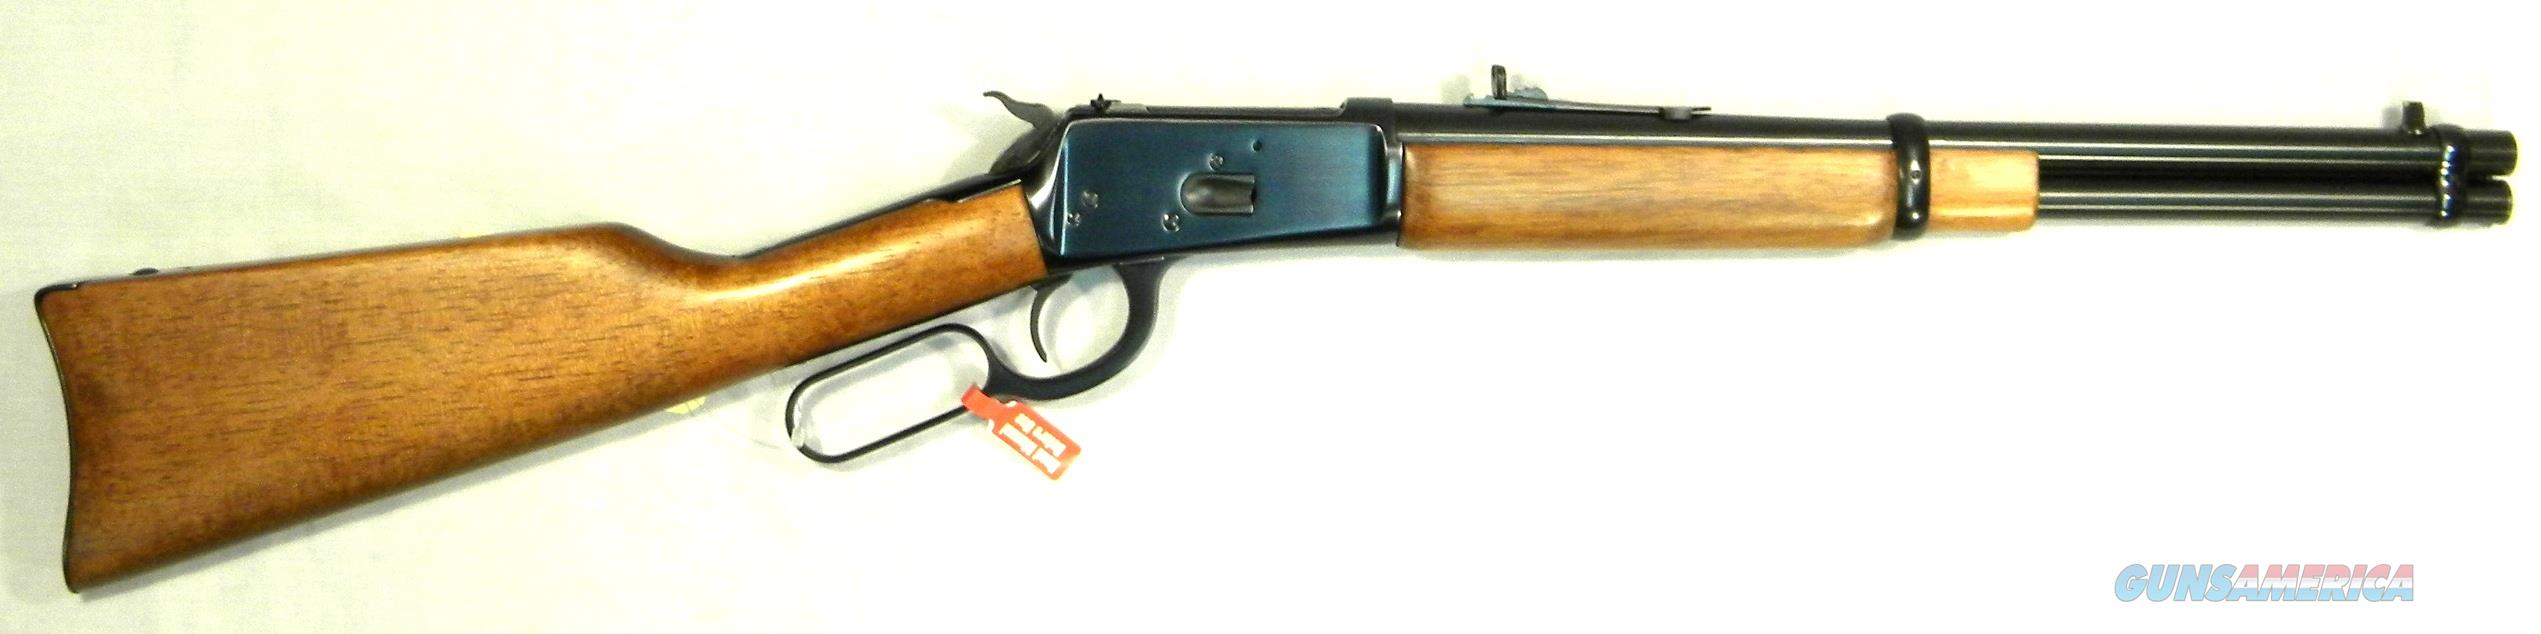 """Rossi R92, .44 Mag Lever-Action 16"""" Blued Rifle, New In Box  Guns > Rifles > Rossi Rifles > Cowboy"""